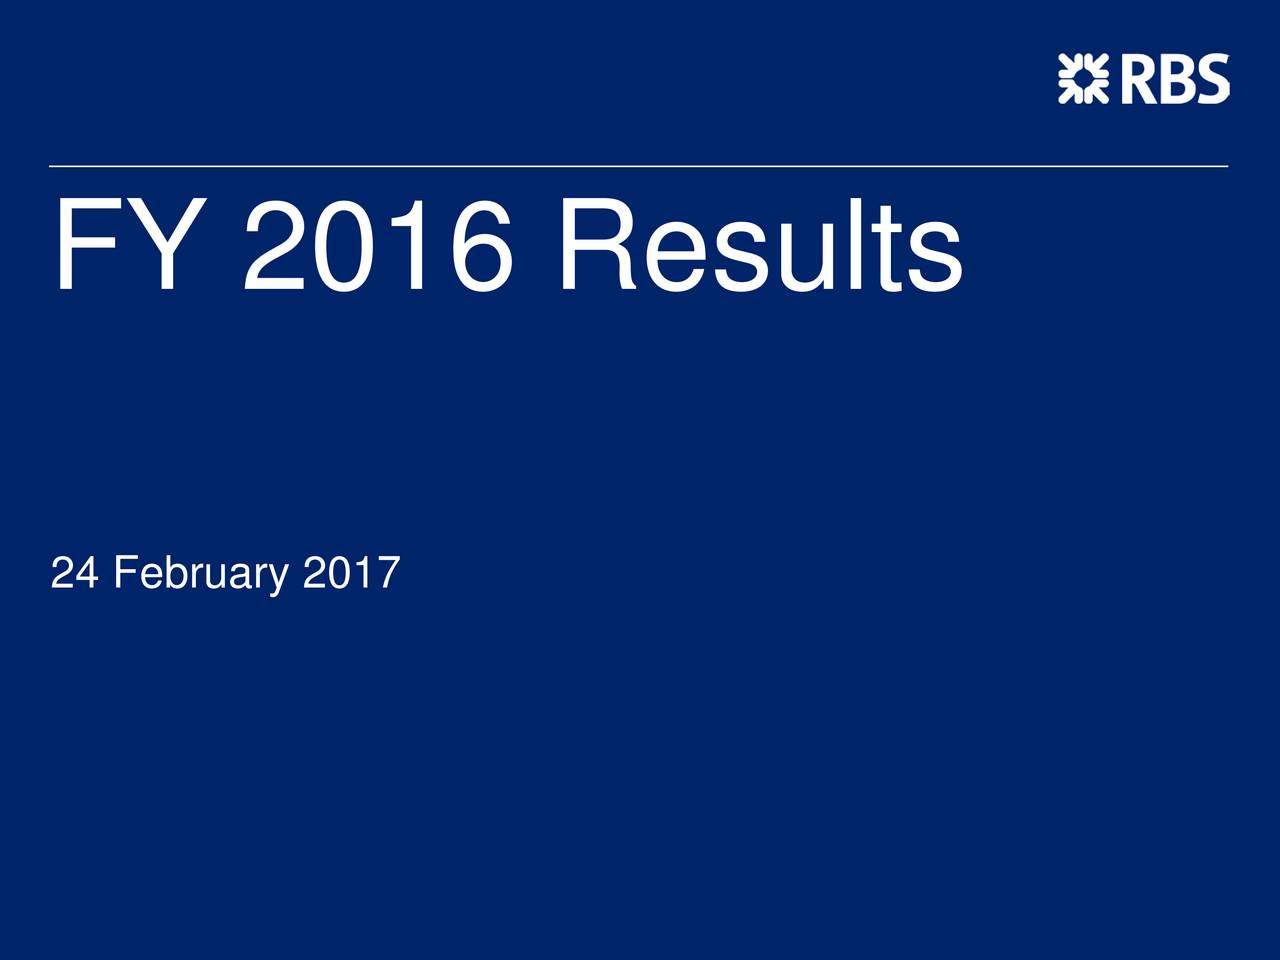 the royal bank of scotland group plc 2016 q4 results earnings